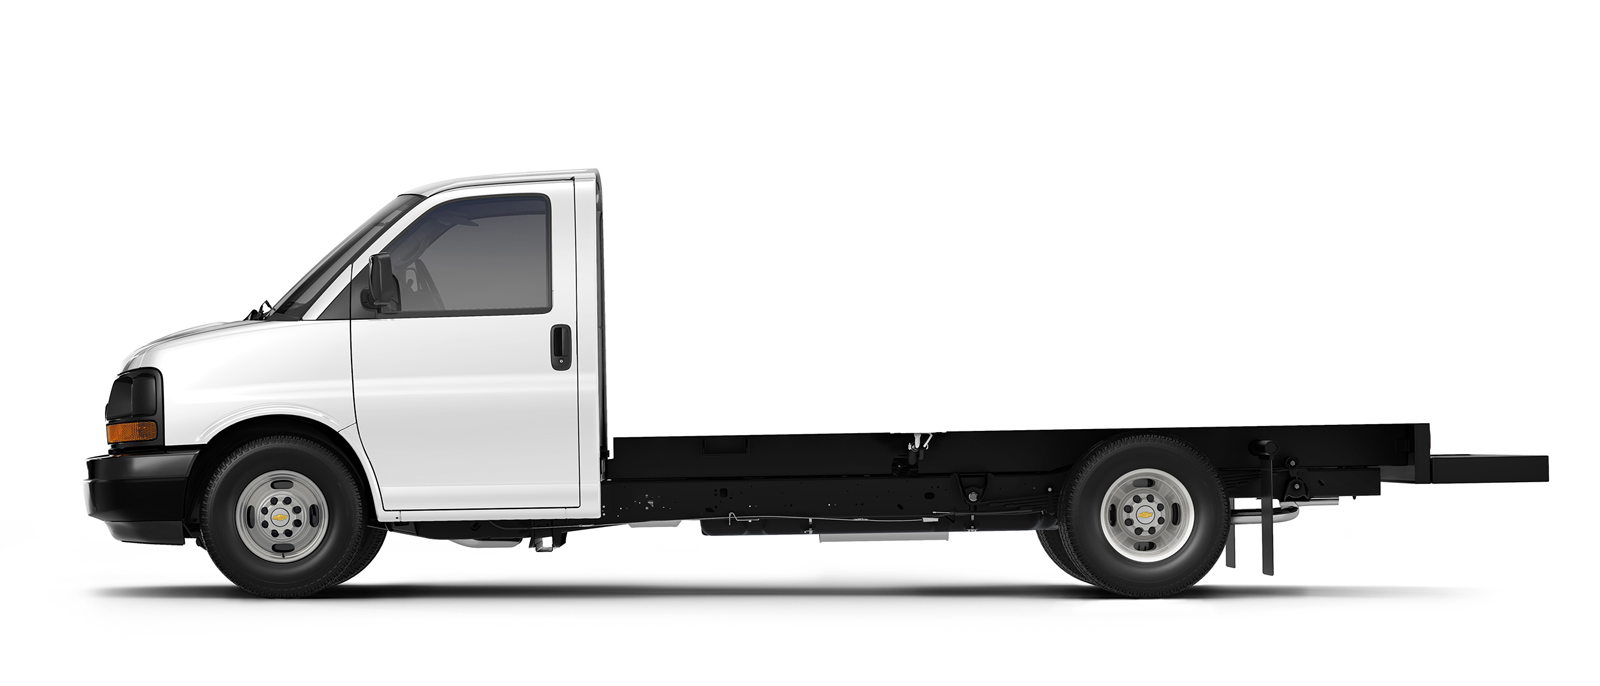 2015 Chevrolet Express Cutaway clear side view